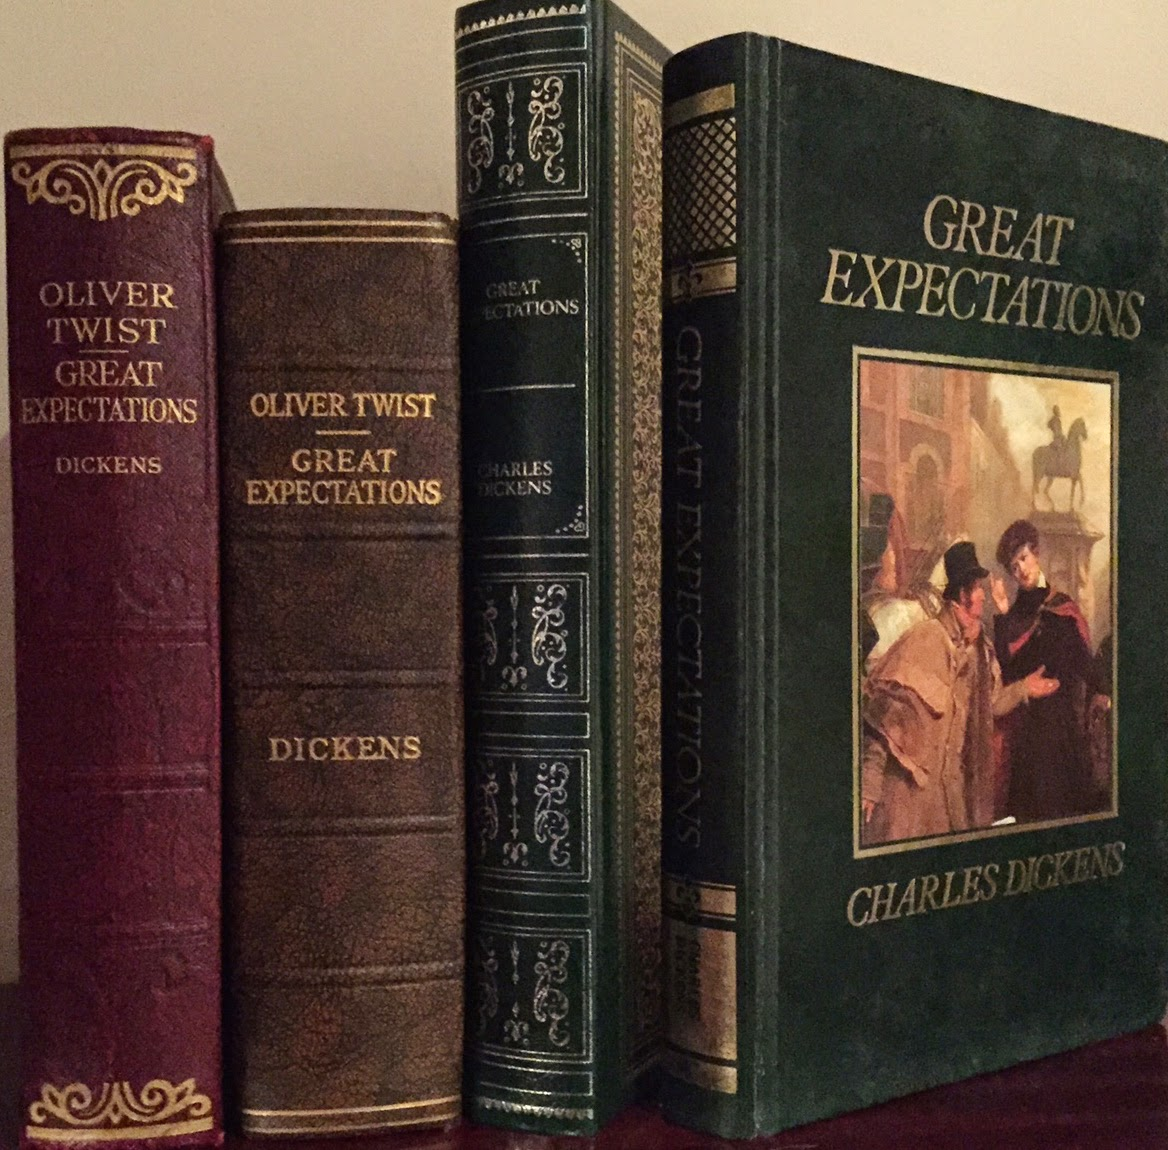 an antiethical example of victorian femininity in great expectations by charles dickens